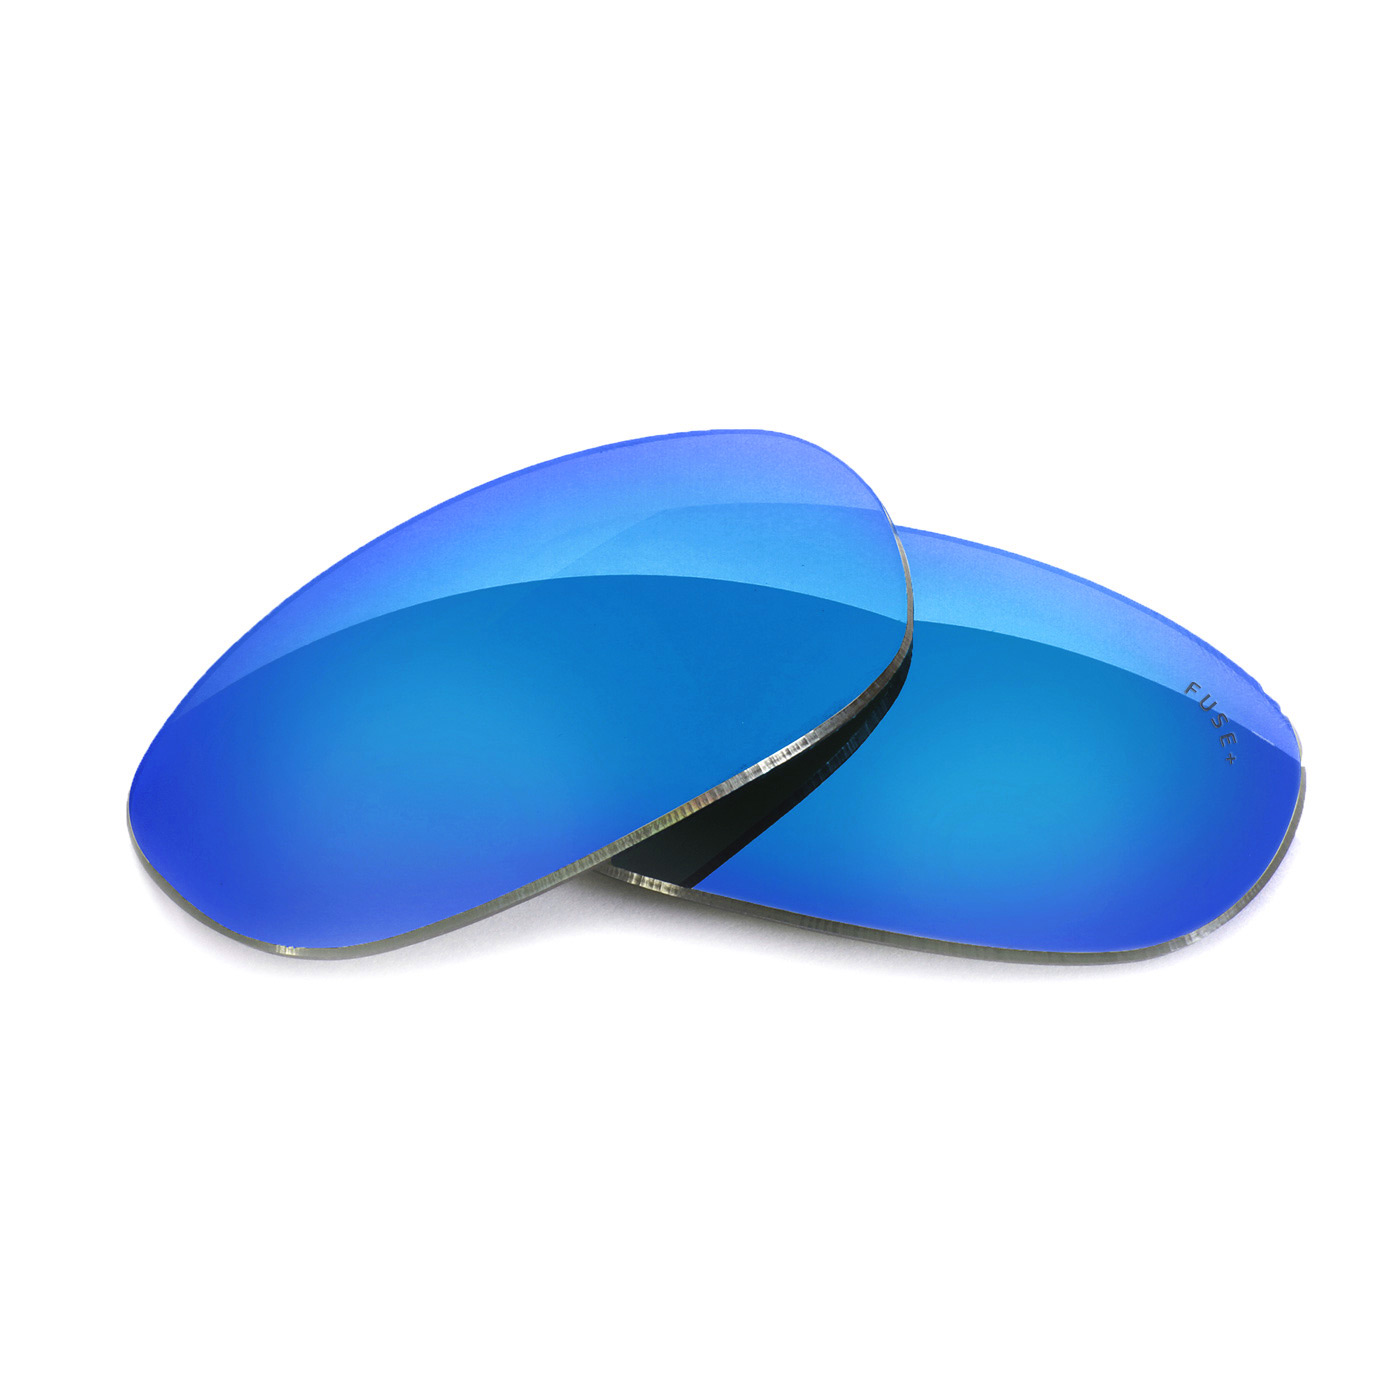 Fuse-Lenses-Replacement-Lenses-for-Smith-Optics-Proof